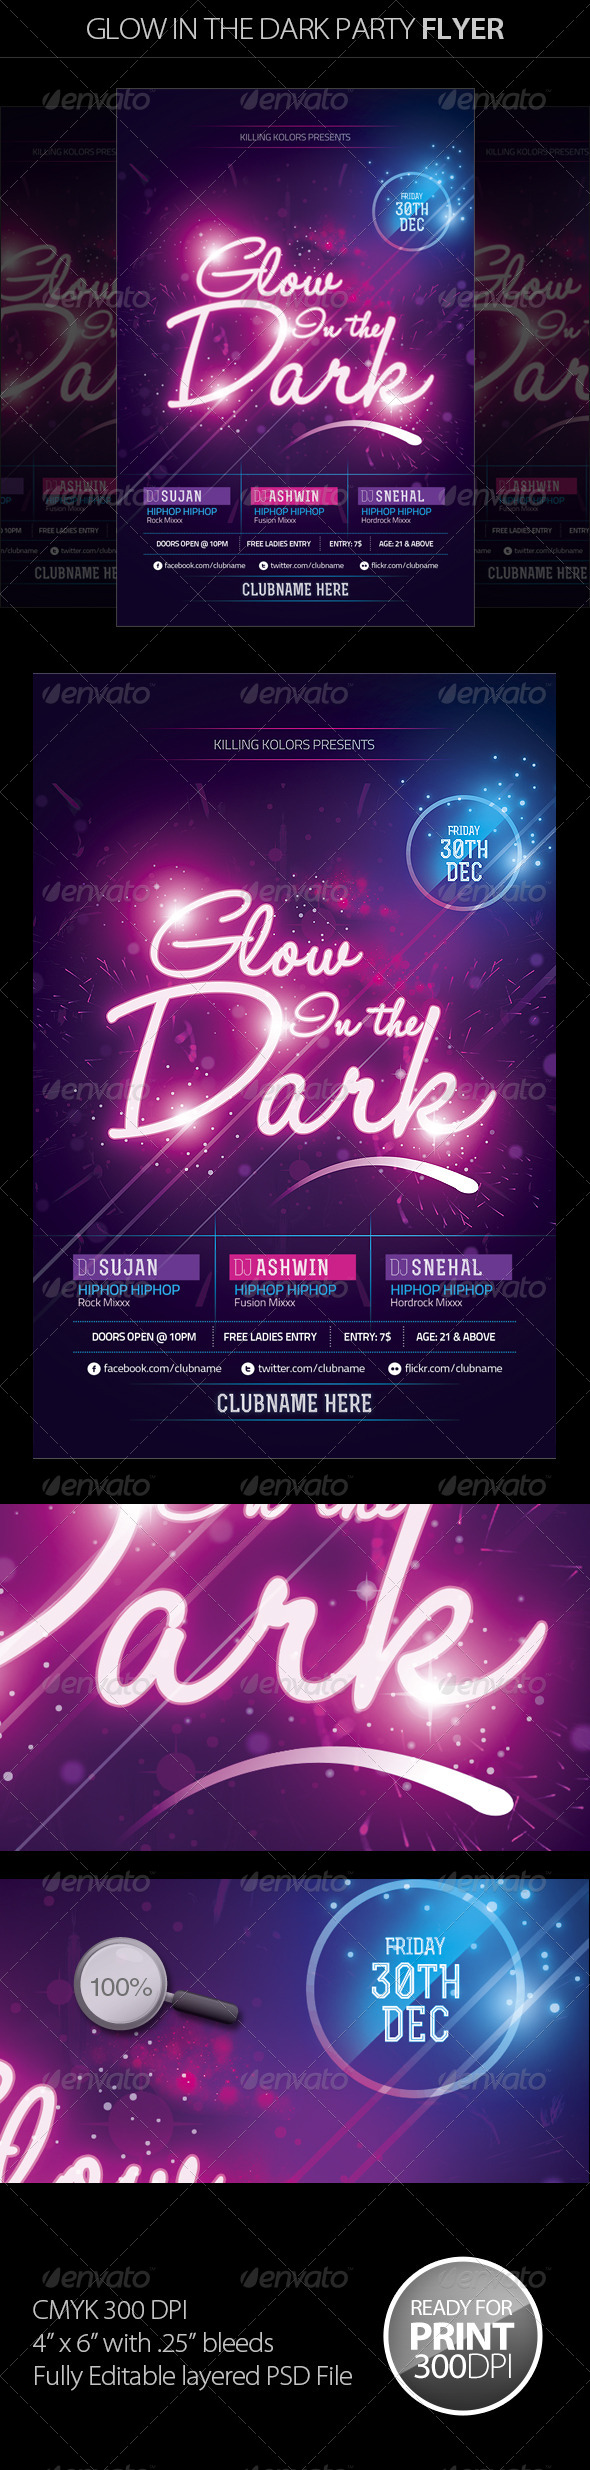 Glow in the Dark Party Flyer II - Clubs & Parties Events